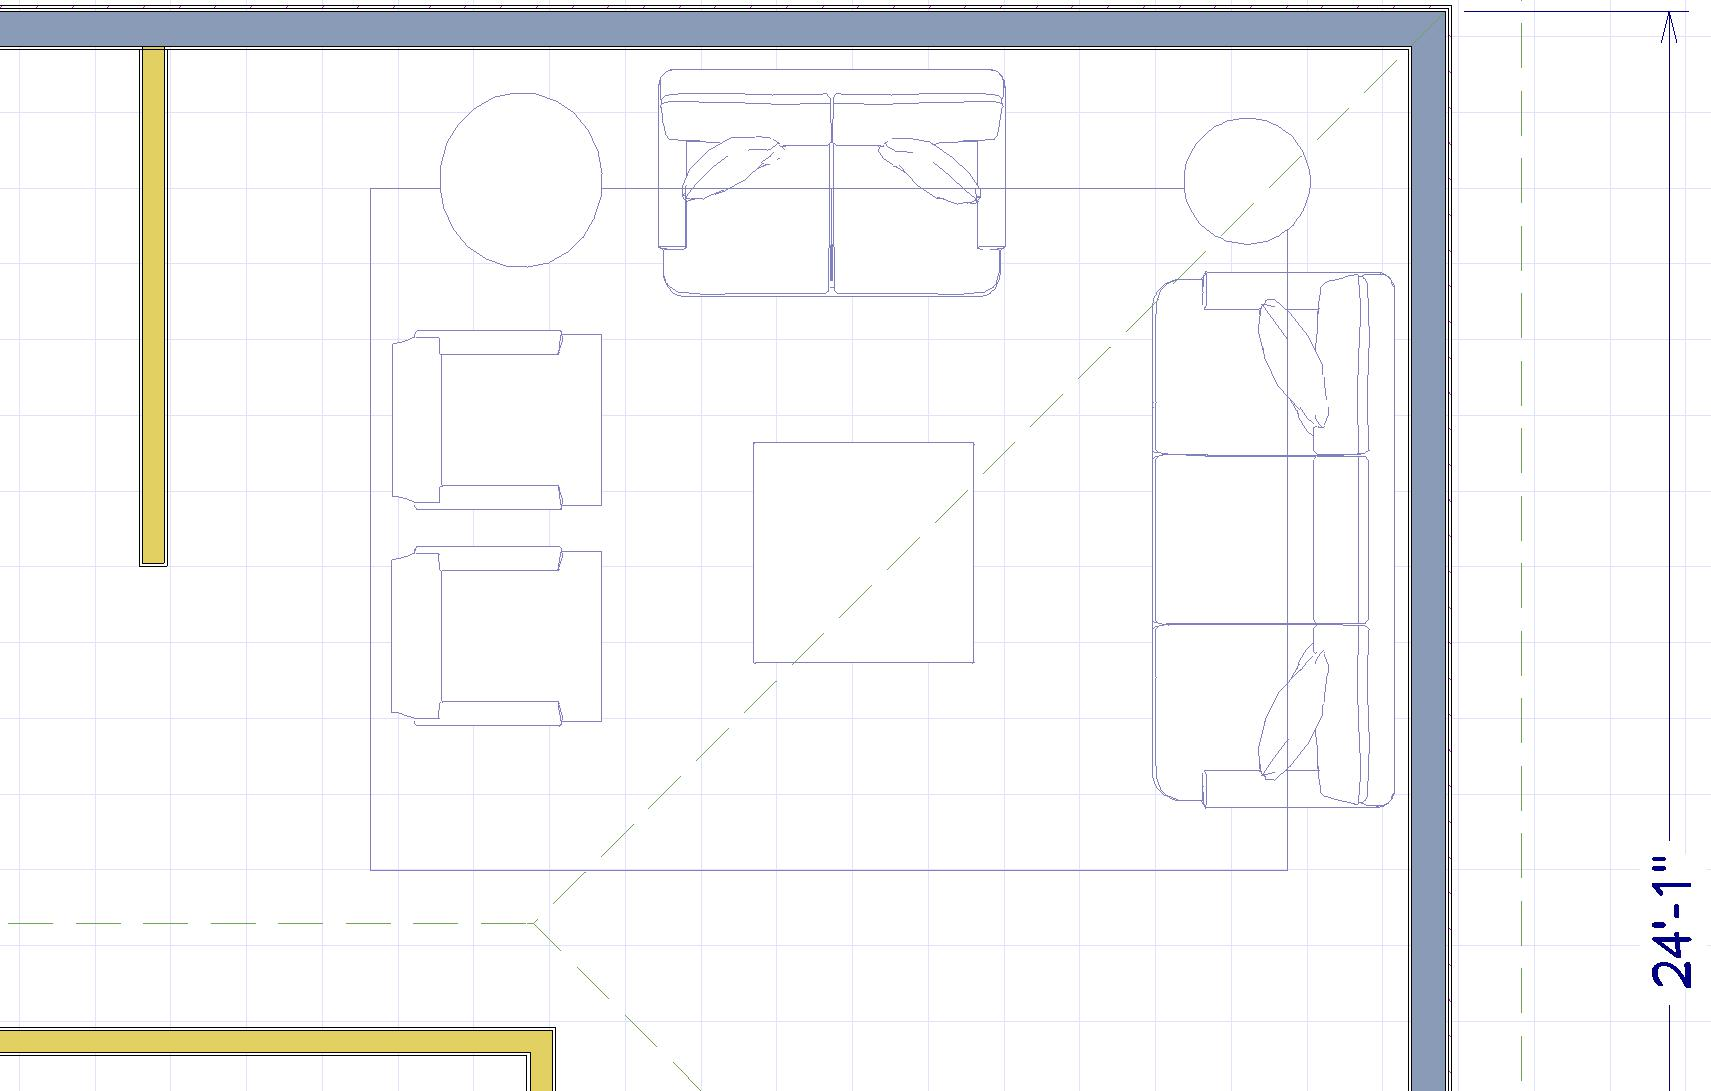 Proposed furniture layout. I do not have measurements of this room so this is a suggestion only. The second swivel chair may be too close to existing black chest of drawers. We would have to play with this layout before ordering any furniture. But this gives you a tighter conversation circle which is a good plan for a Living Room. We could do just one swivel chair and omit the existing two wing back chairs.